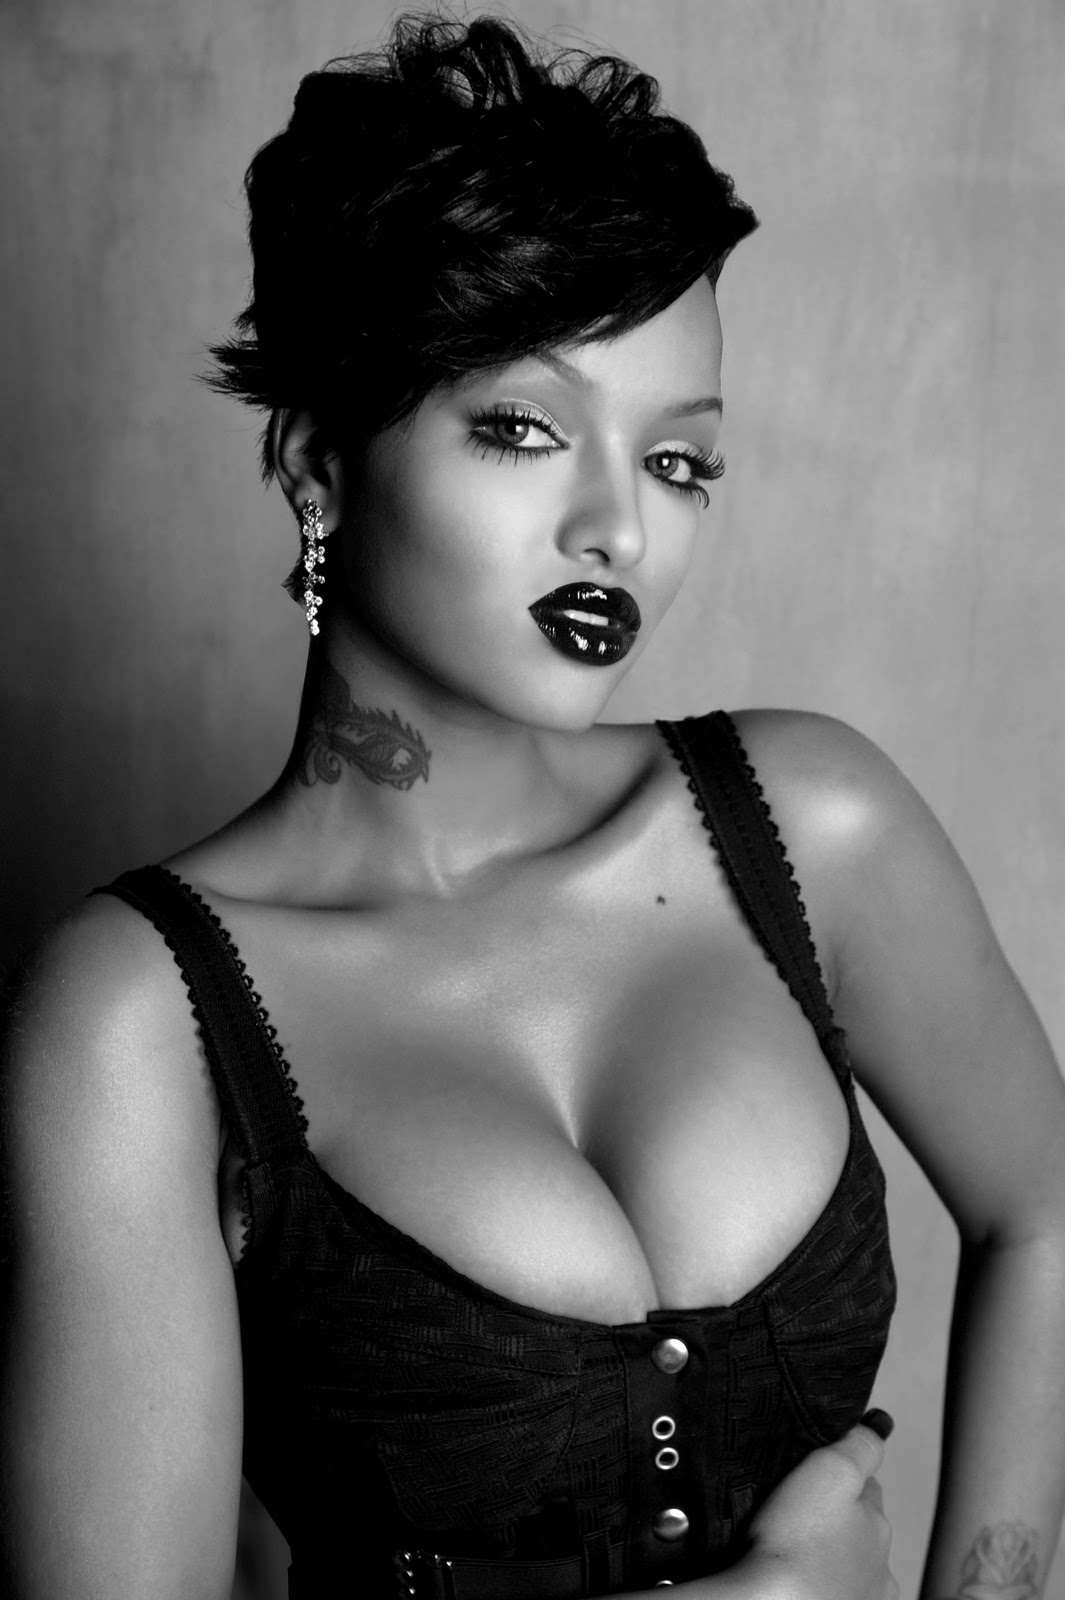 Hot LoLa Monroe nudes (63 photos), Tits, Is a cute, Boobs, in bikini 2006